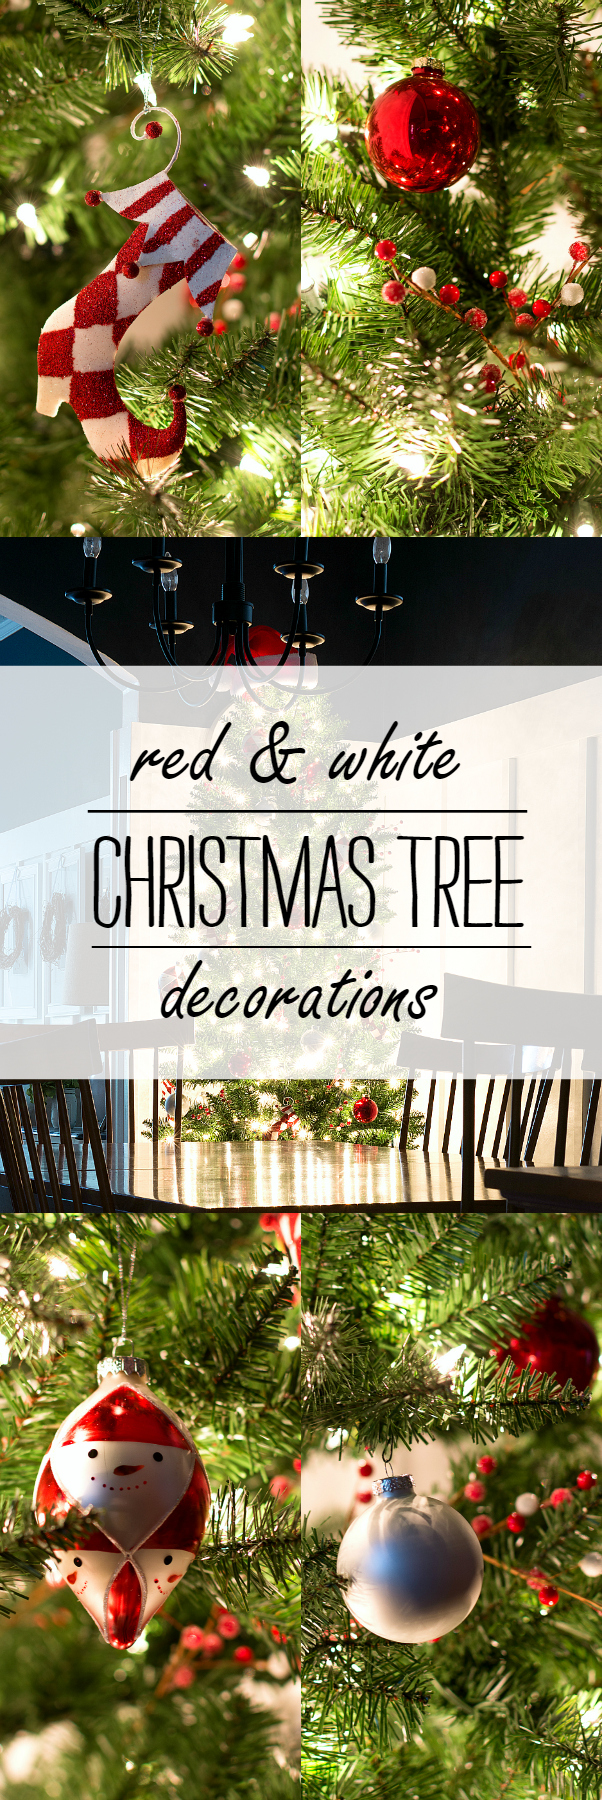 Christmas Tree Decorating Ideas Red and White